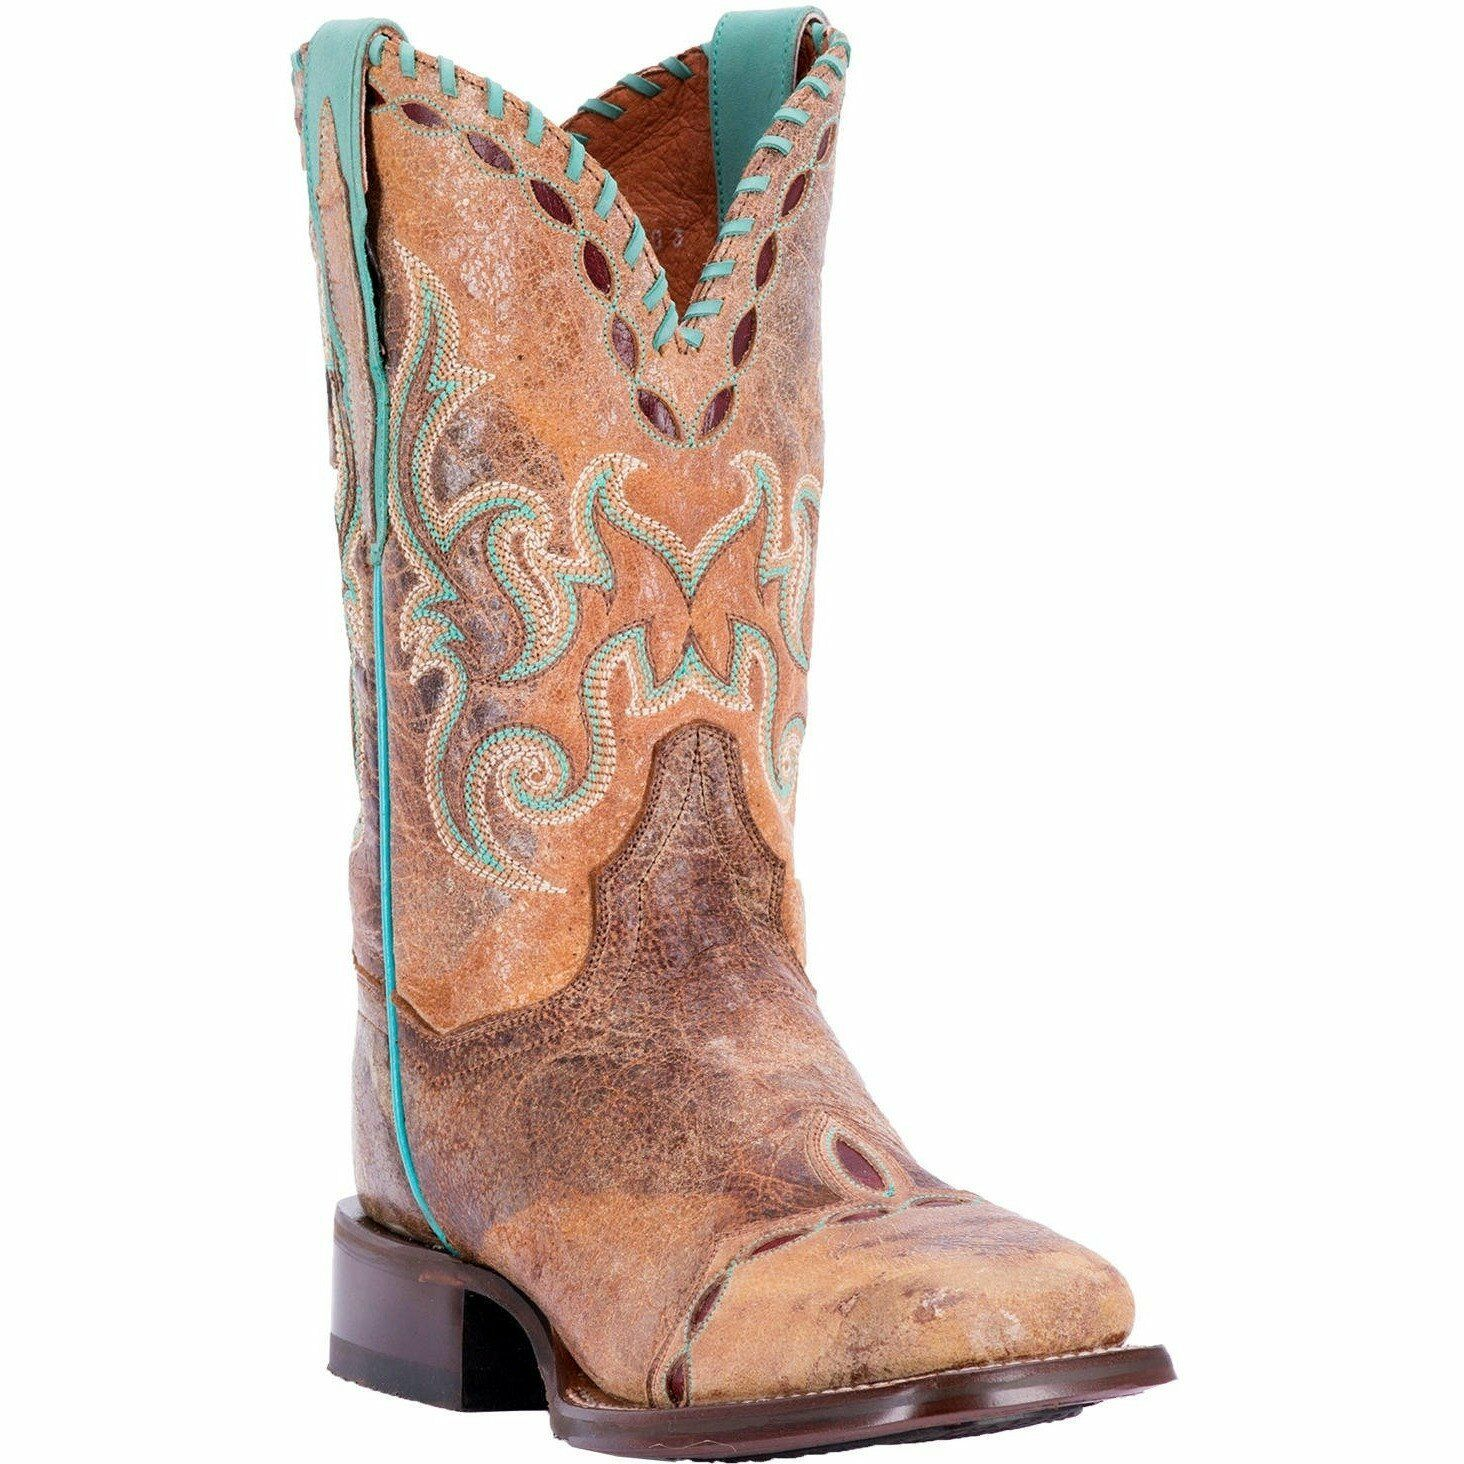 Women's Dan Post Mckenna Boots Cowgirl Certified Certified Certified Square Toe Handcrafted DP4621 dec72f